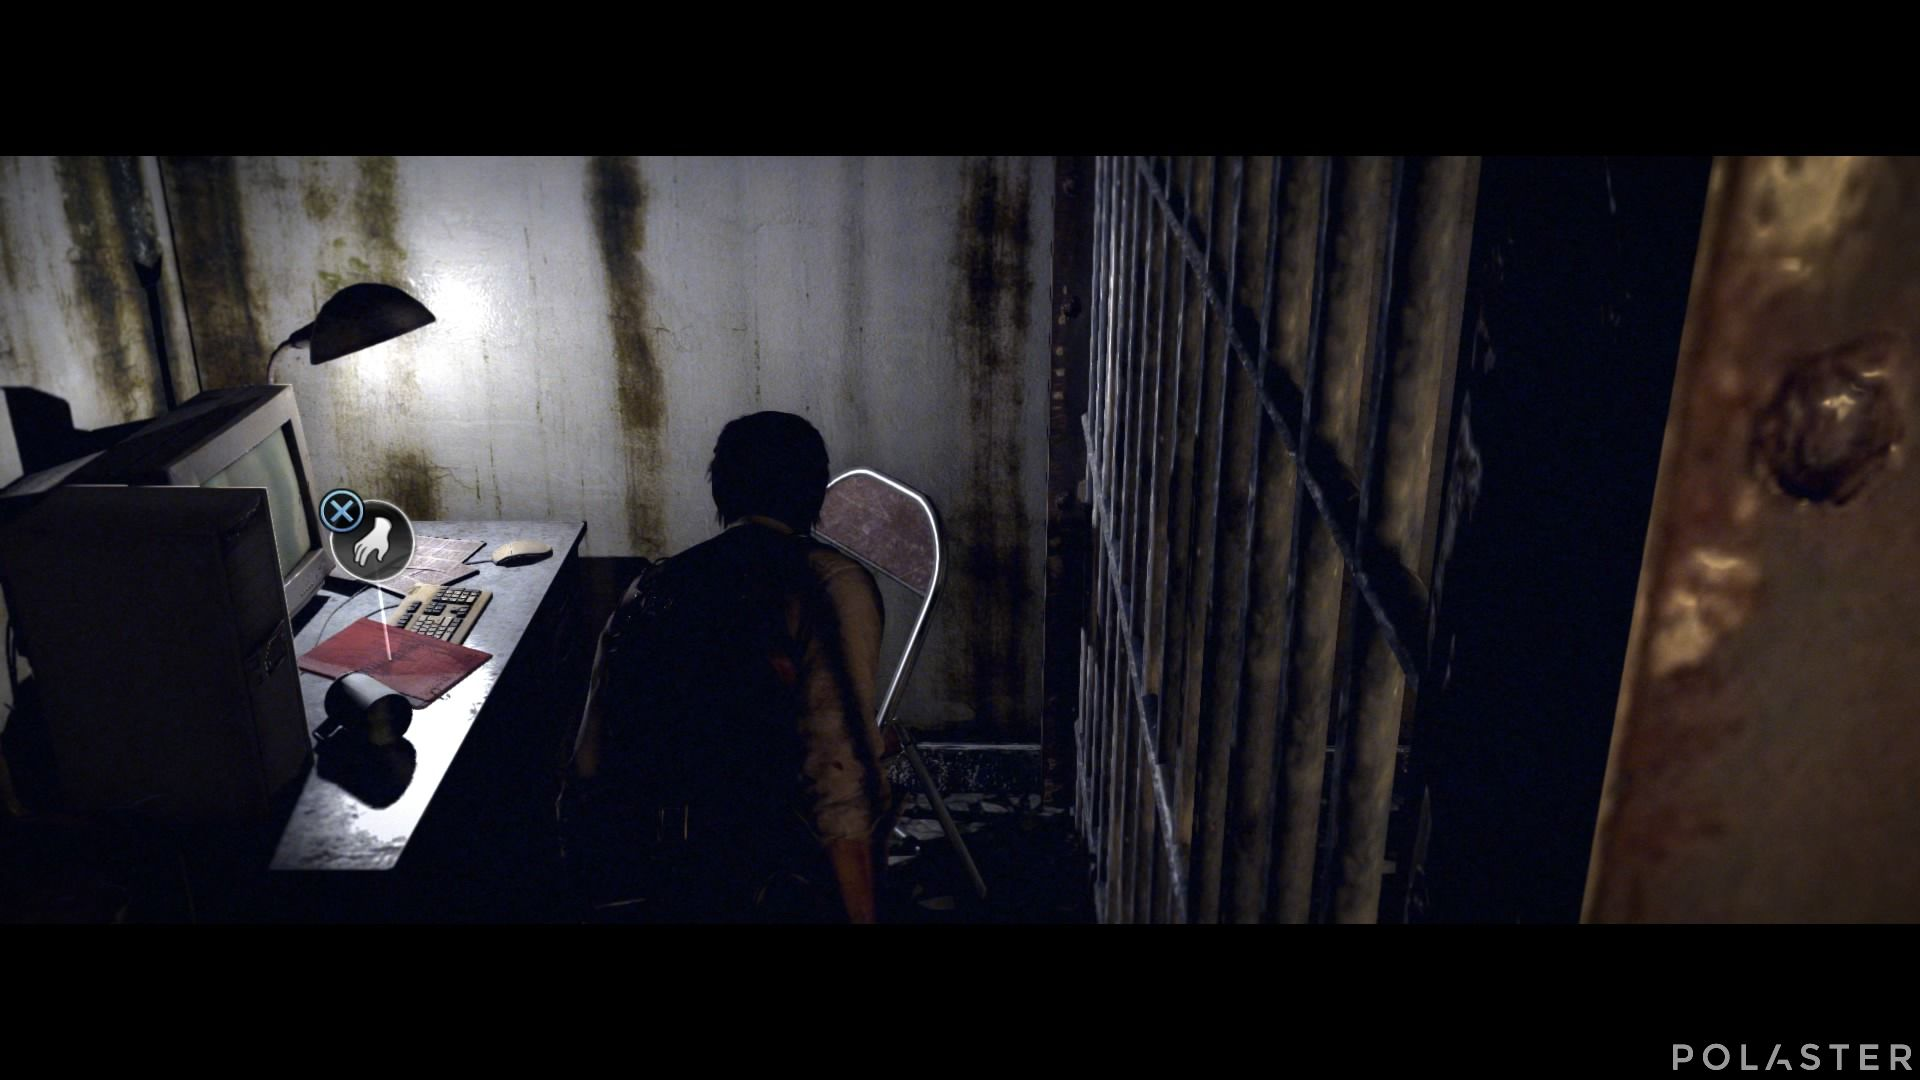 The Evil Within - Coleccionables - Documento: Nota del cuarto de calderas